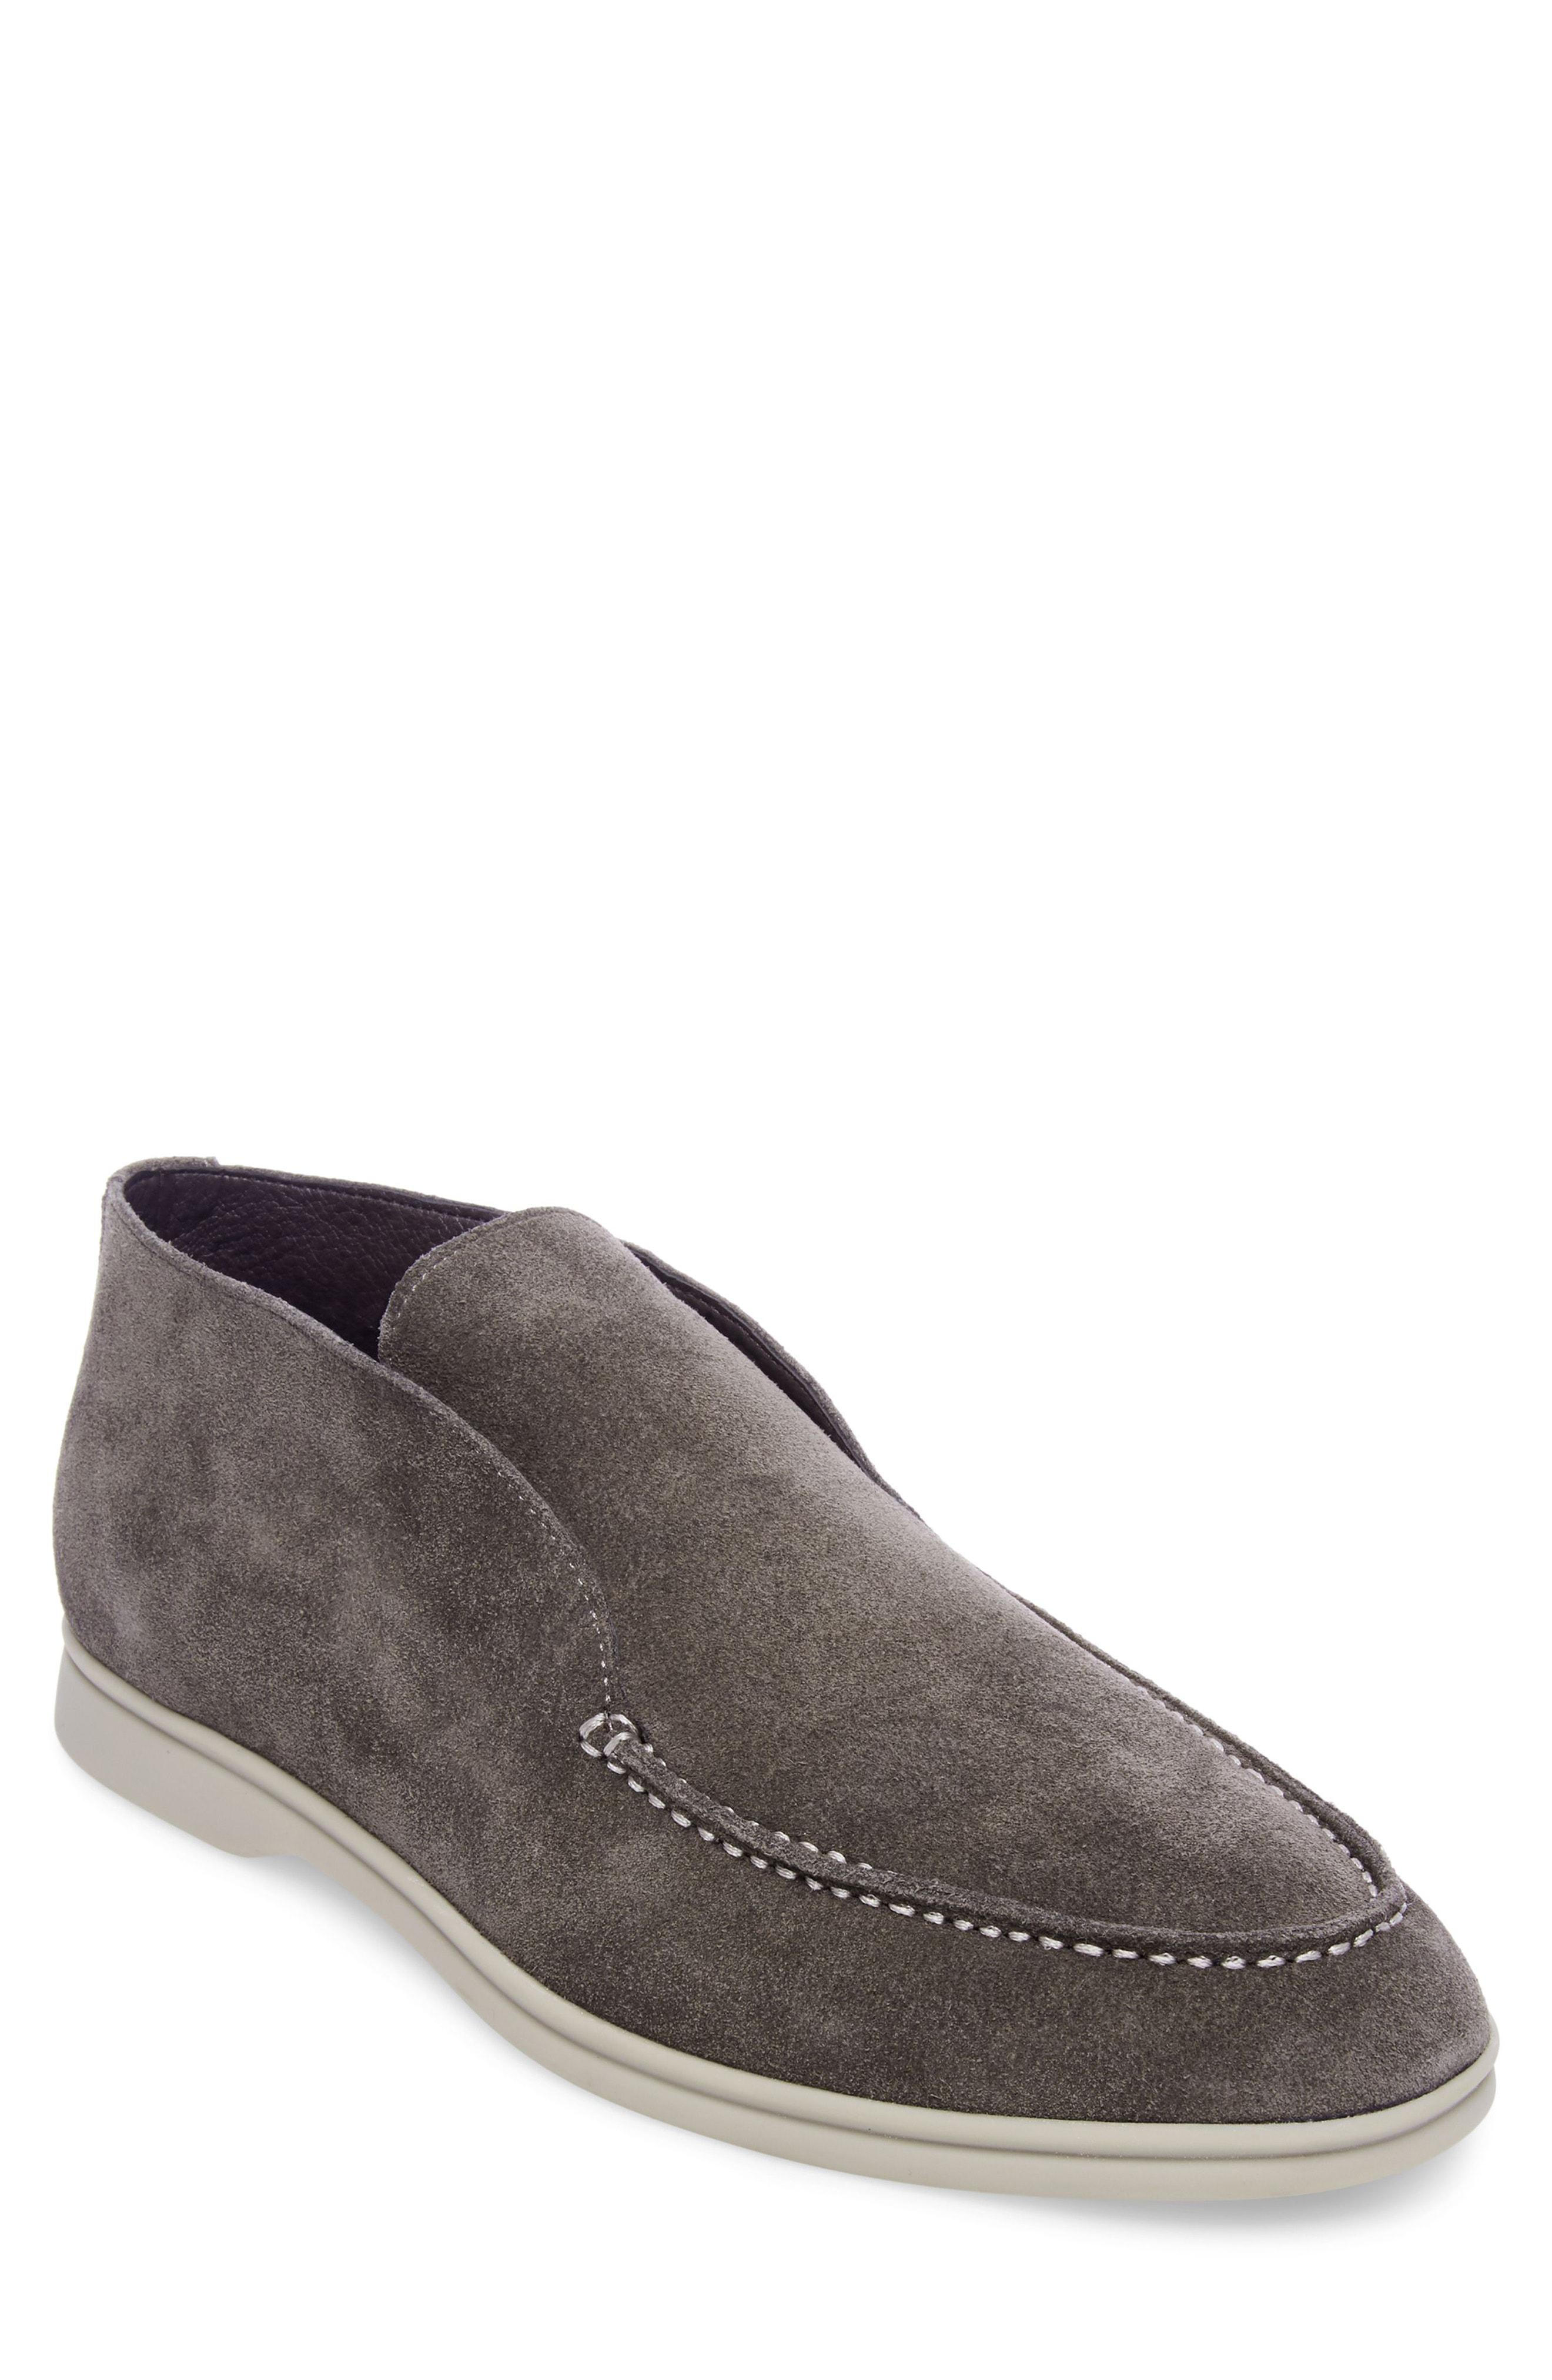 65e2aed71b9 Lyst - Steve Madden Boot in Brown for Men